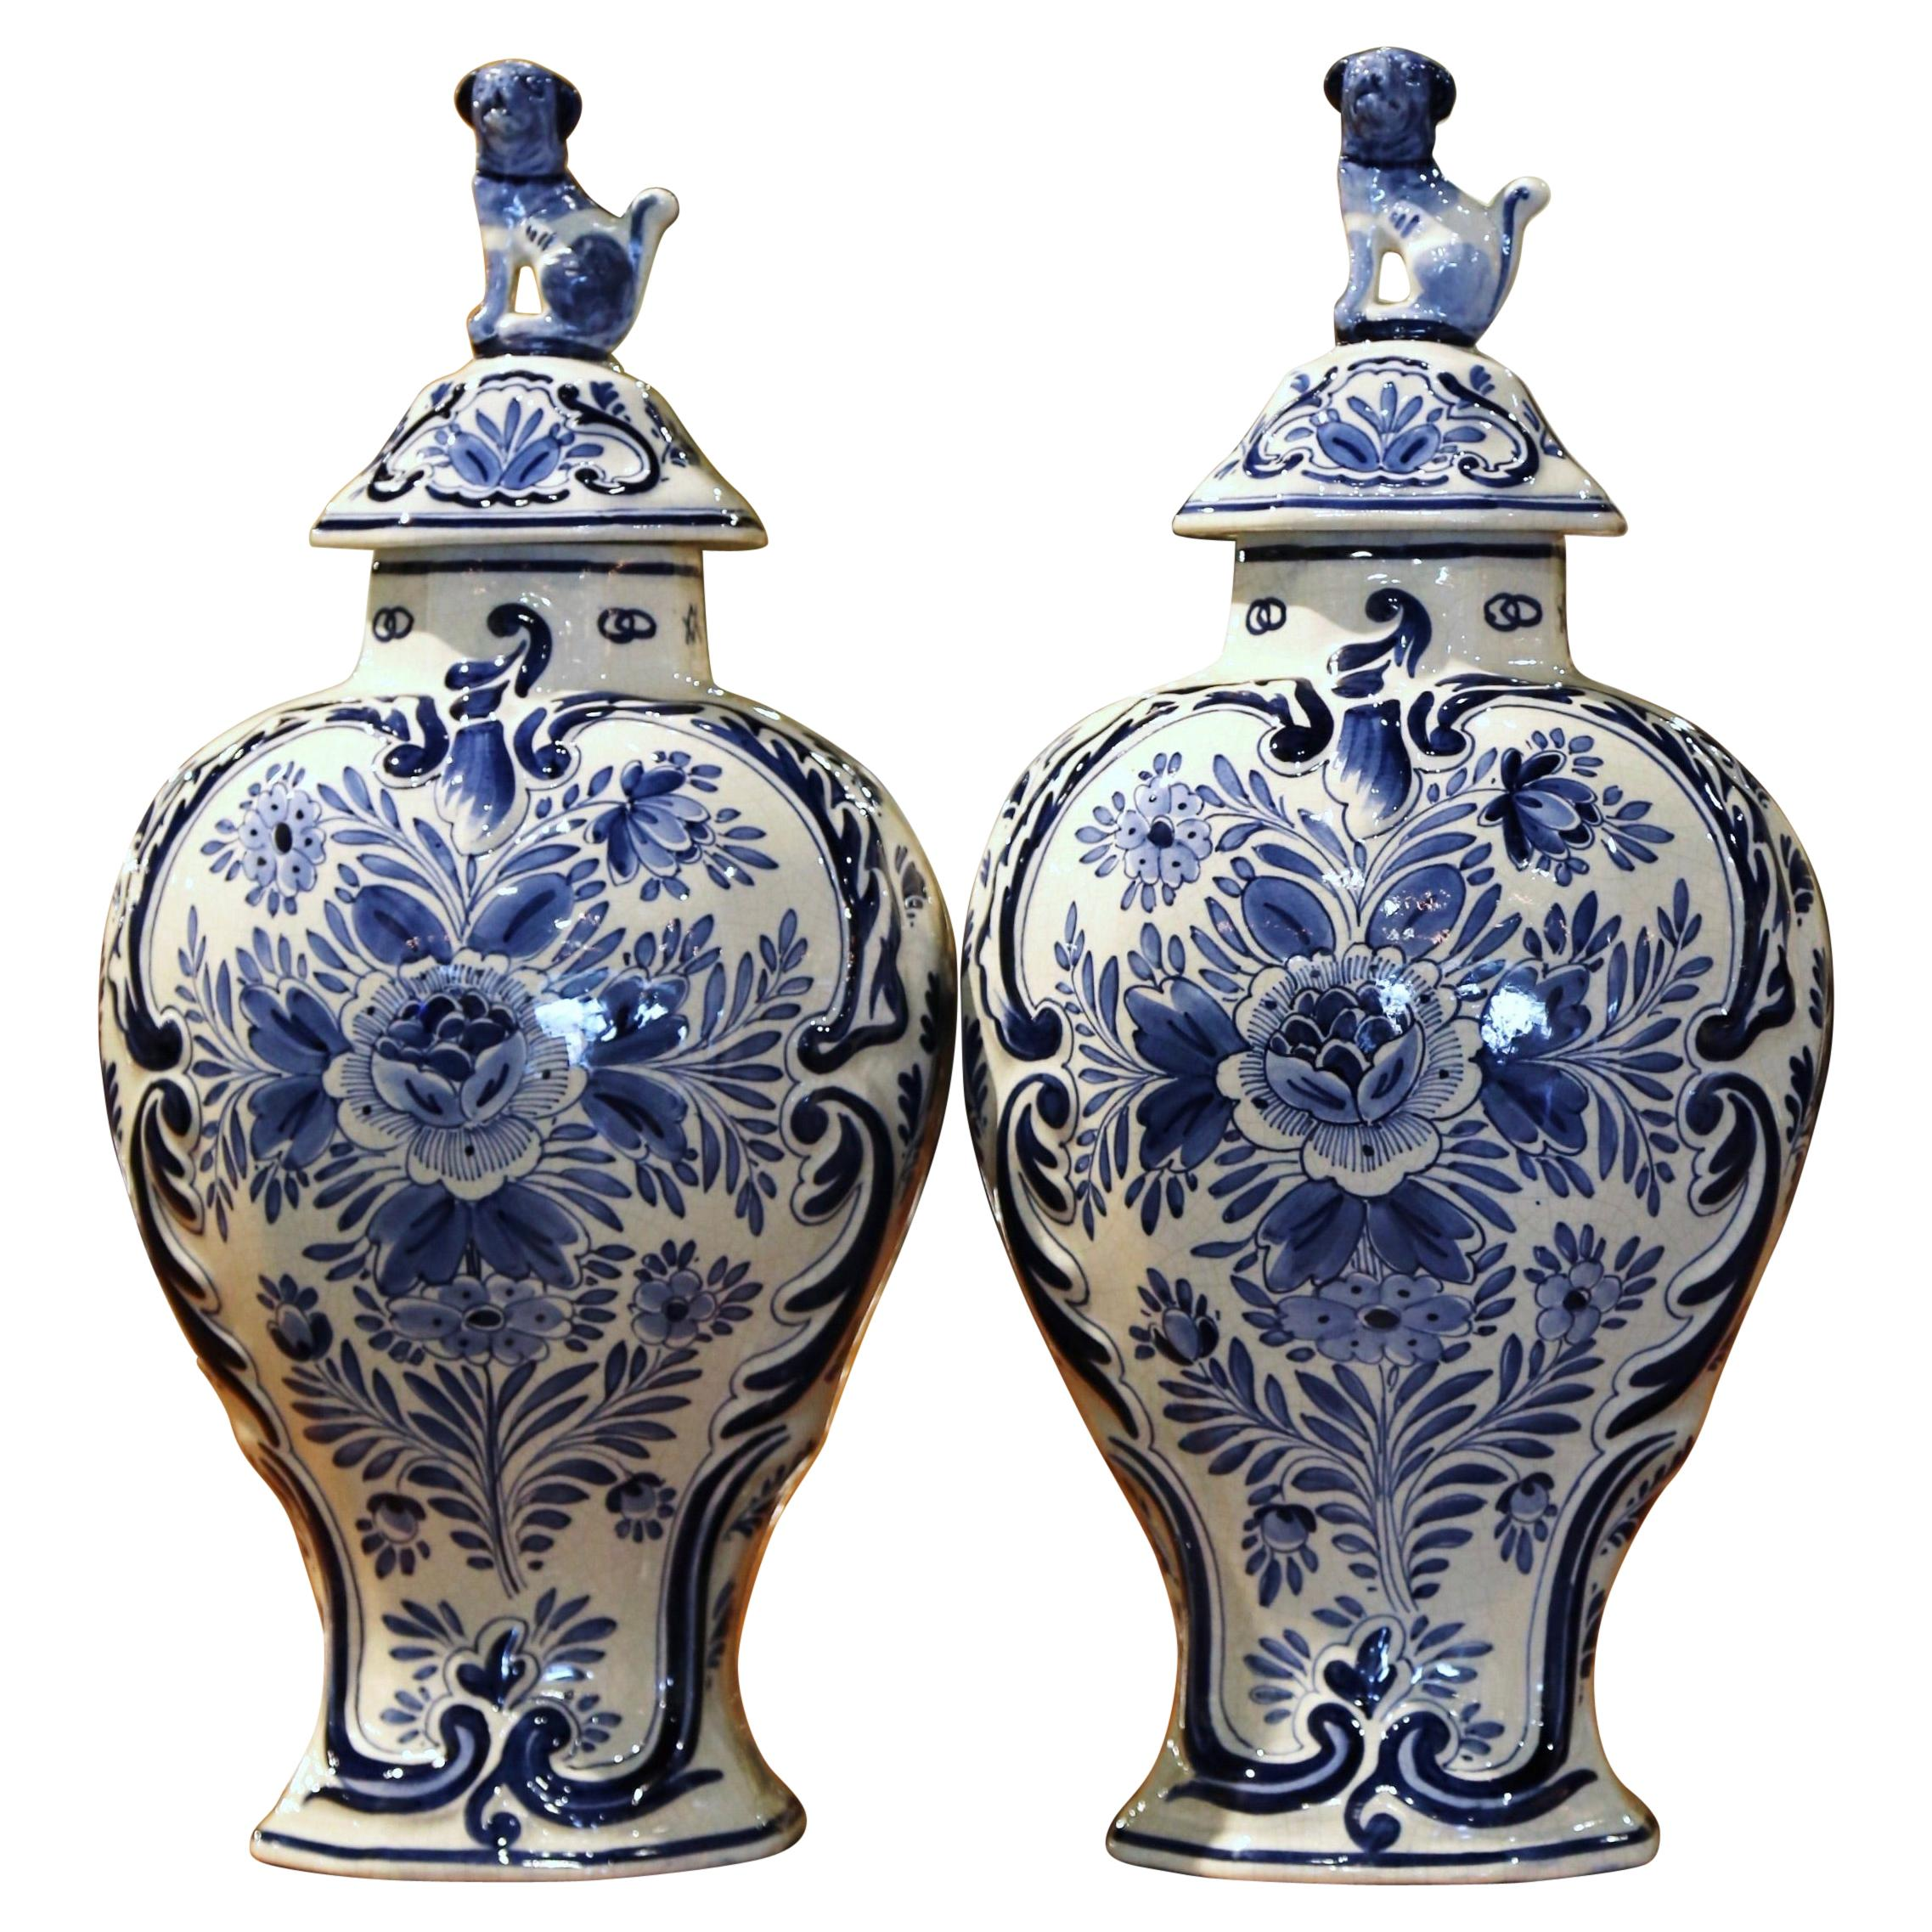 Pair of Mid-20th Century Dutch Blue and White Hand-Painted Delft Ginger Jars